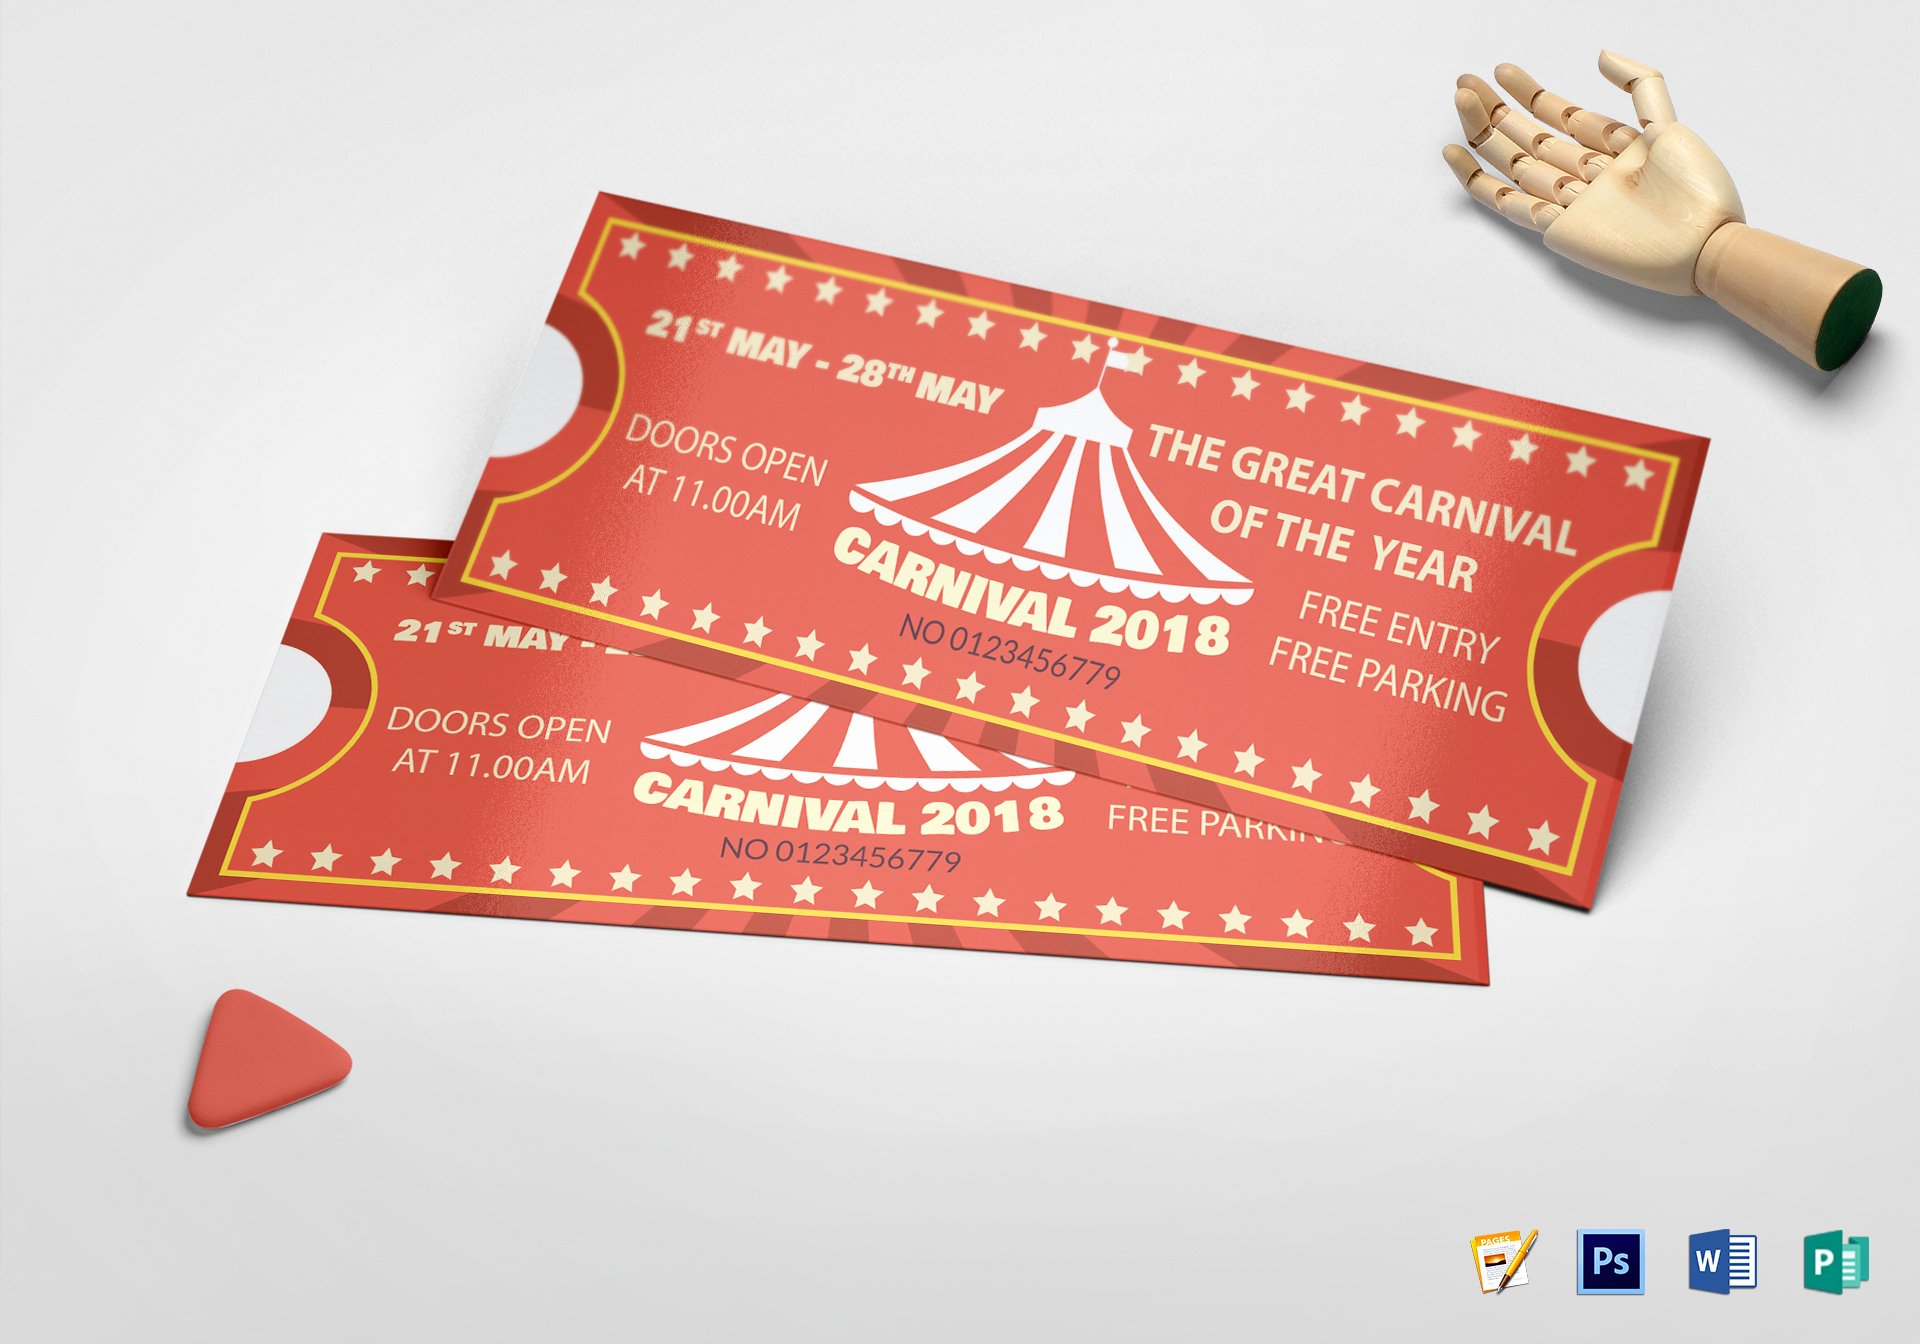 Carnival Ticket Template Awesome Printable Carnival Ticket Design Template In Psd Word